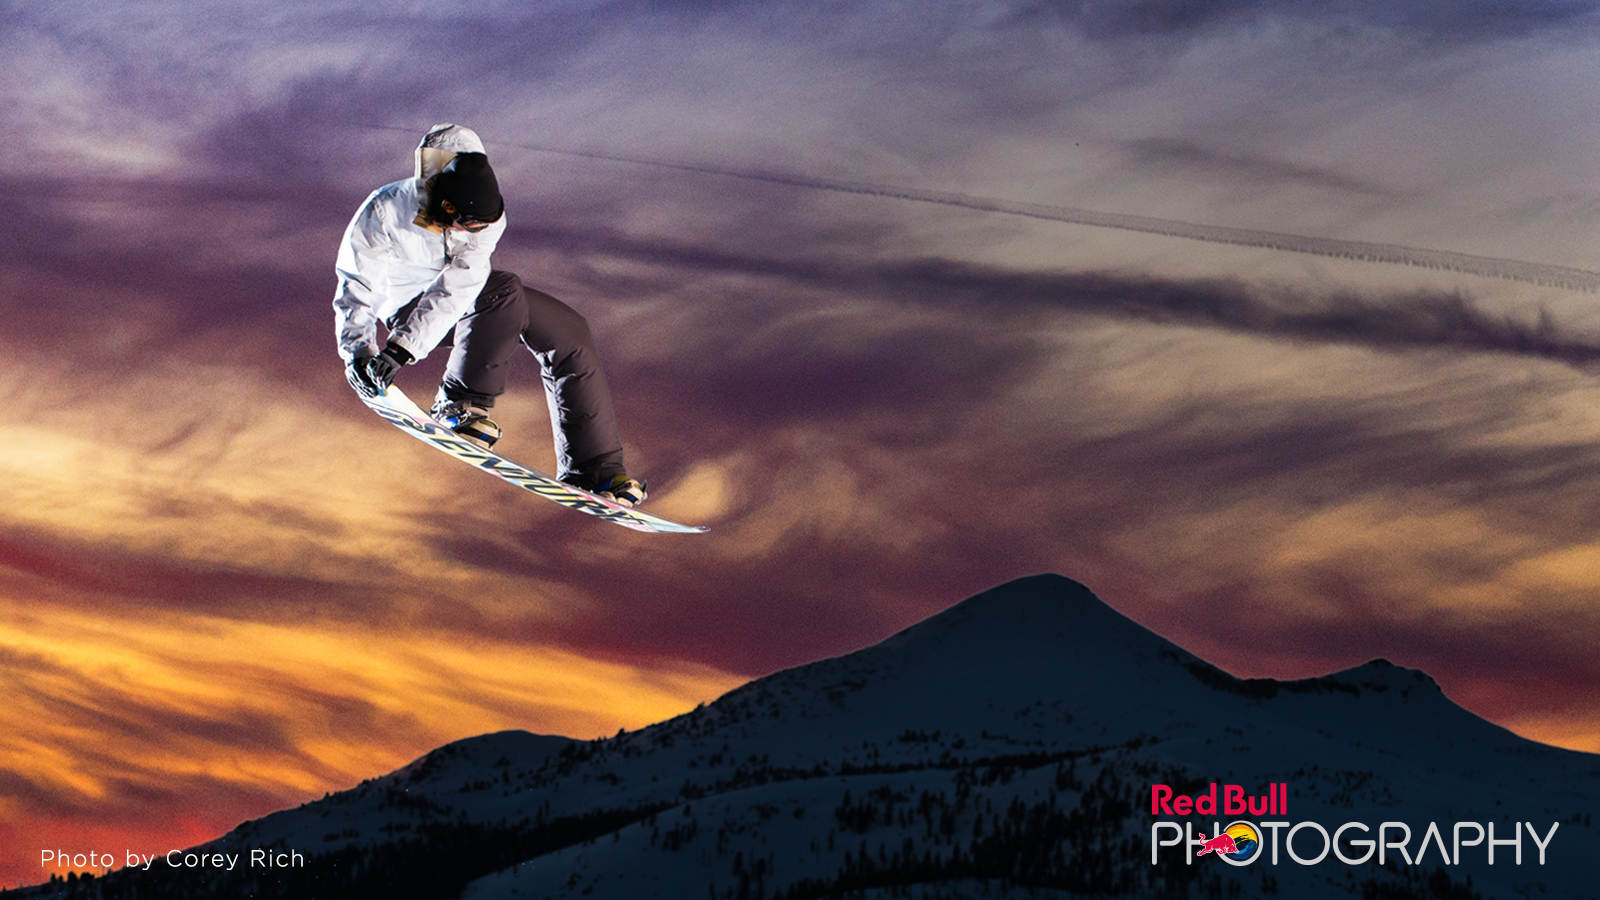 sports photography best online photography course